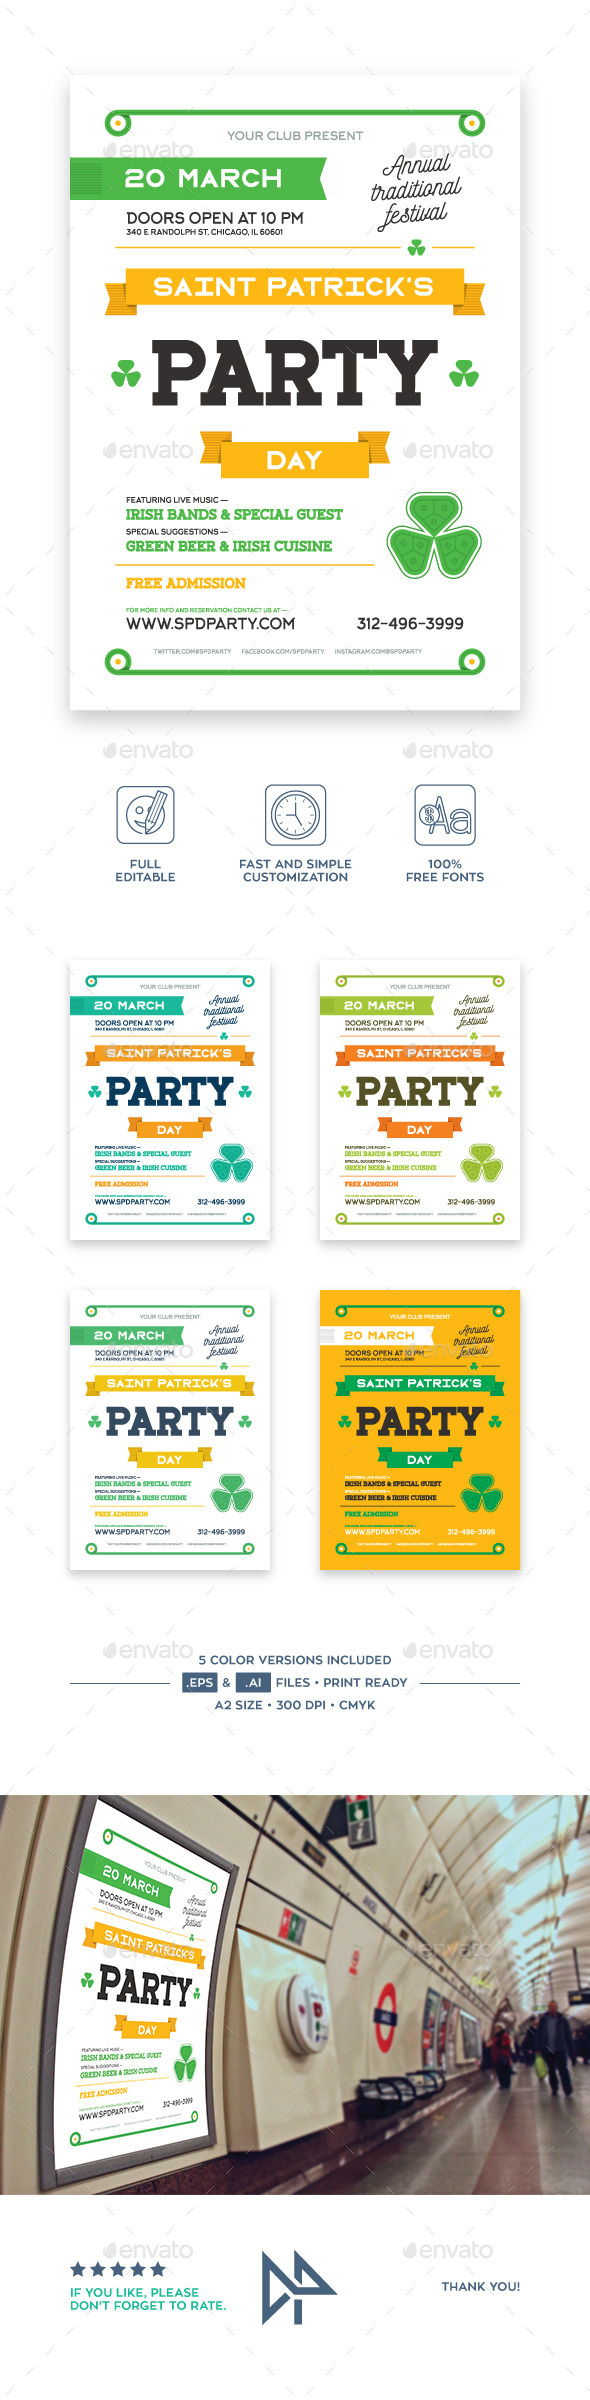 St. Patrick's Party Poster, vol.2 - Holidays Events